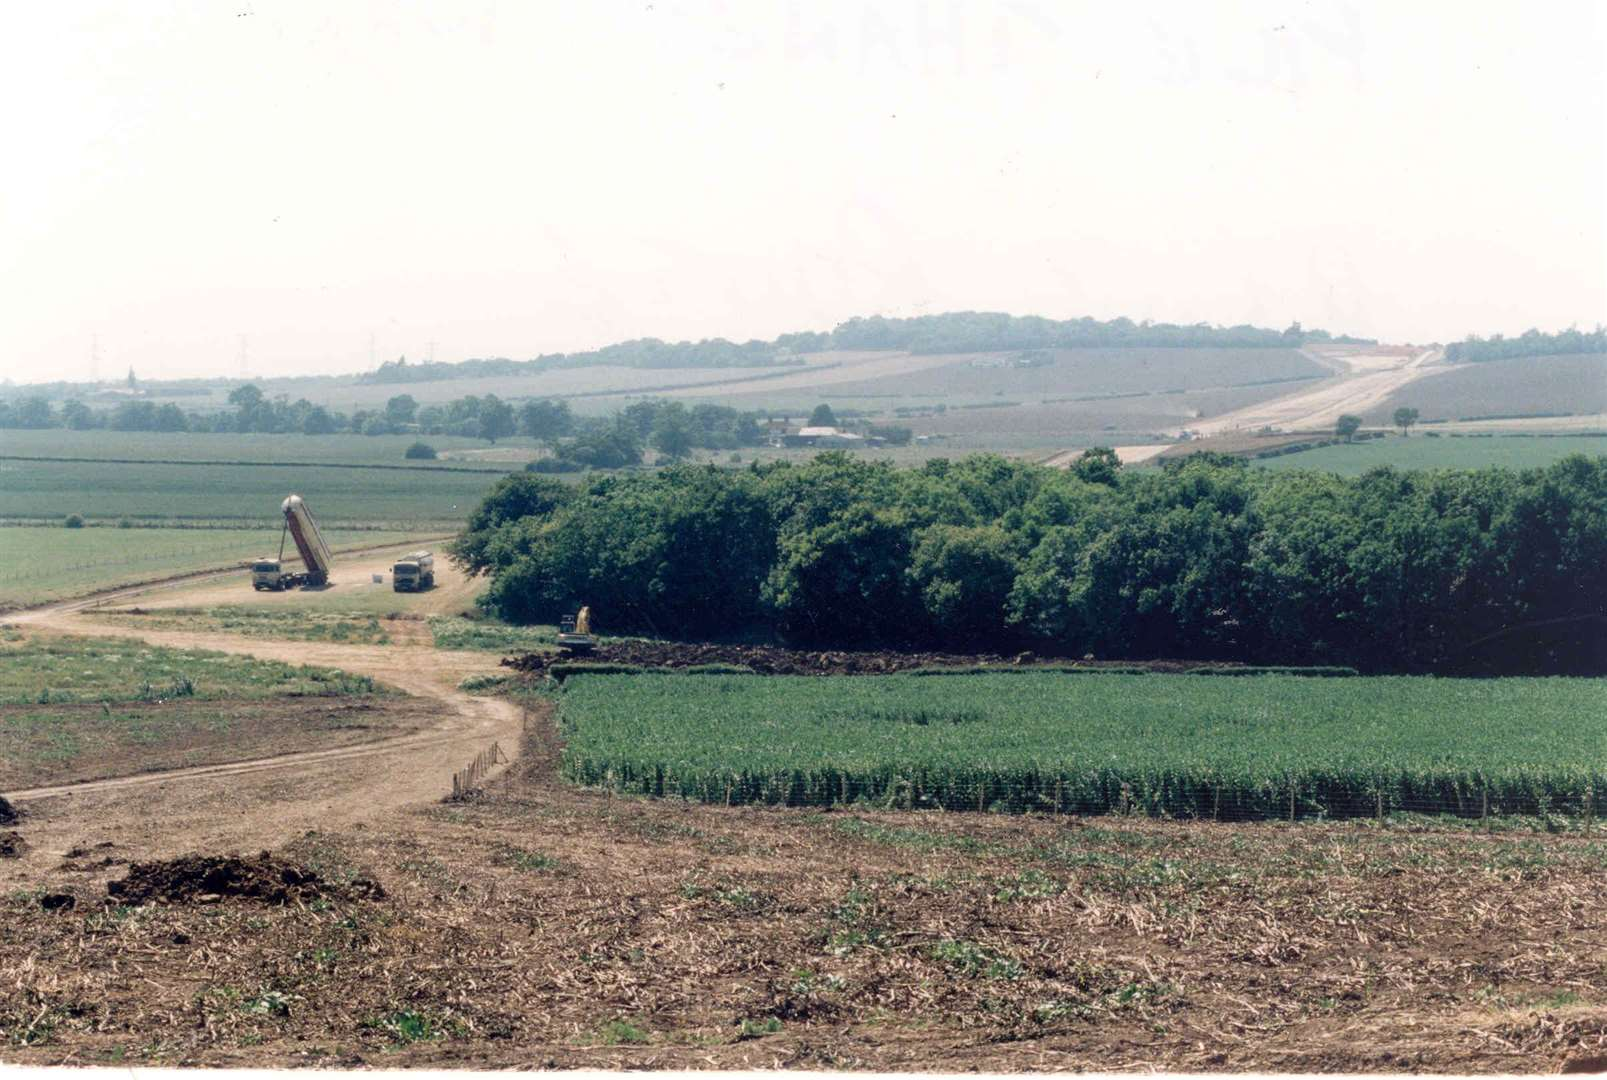 Construction of the new Thanet Way